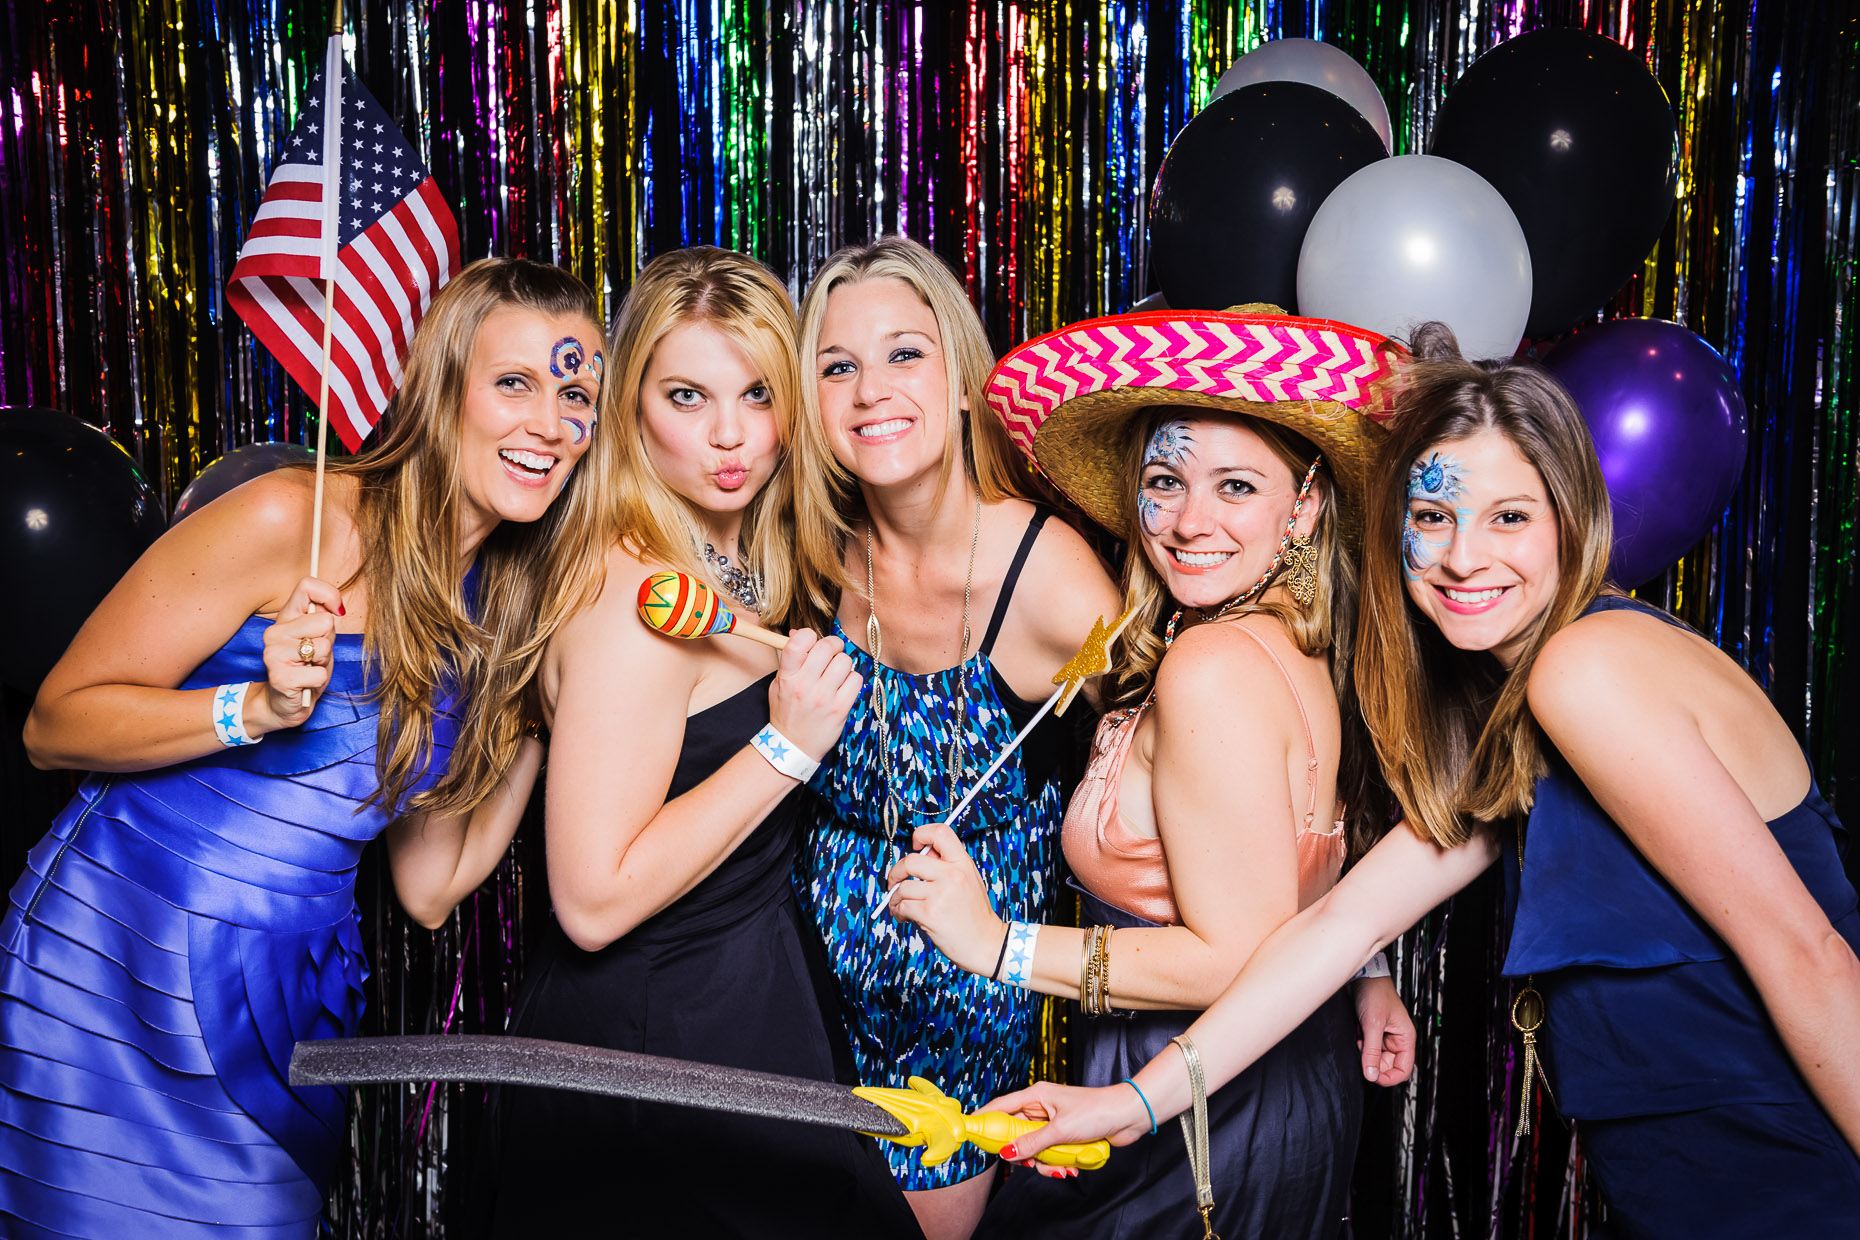 Photobooth-Austin-Event-Commercial-Photographer-Costumes-Fun.jpg